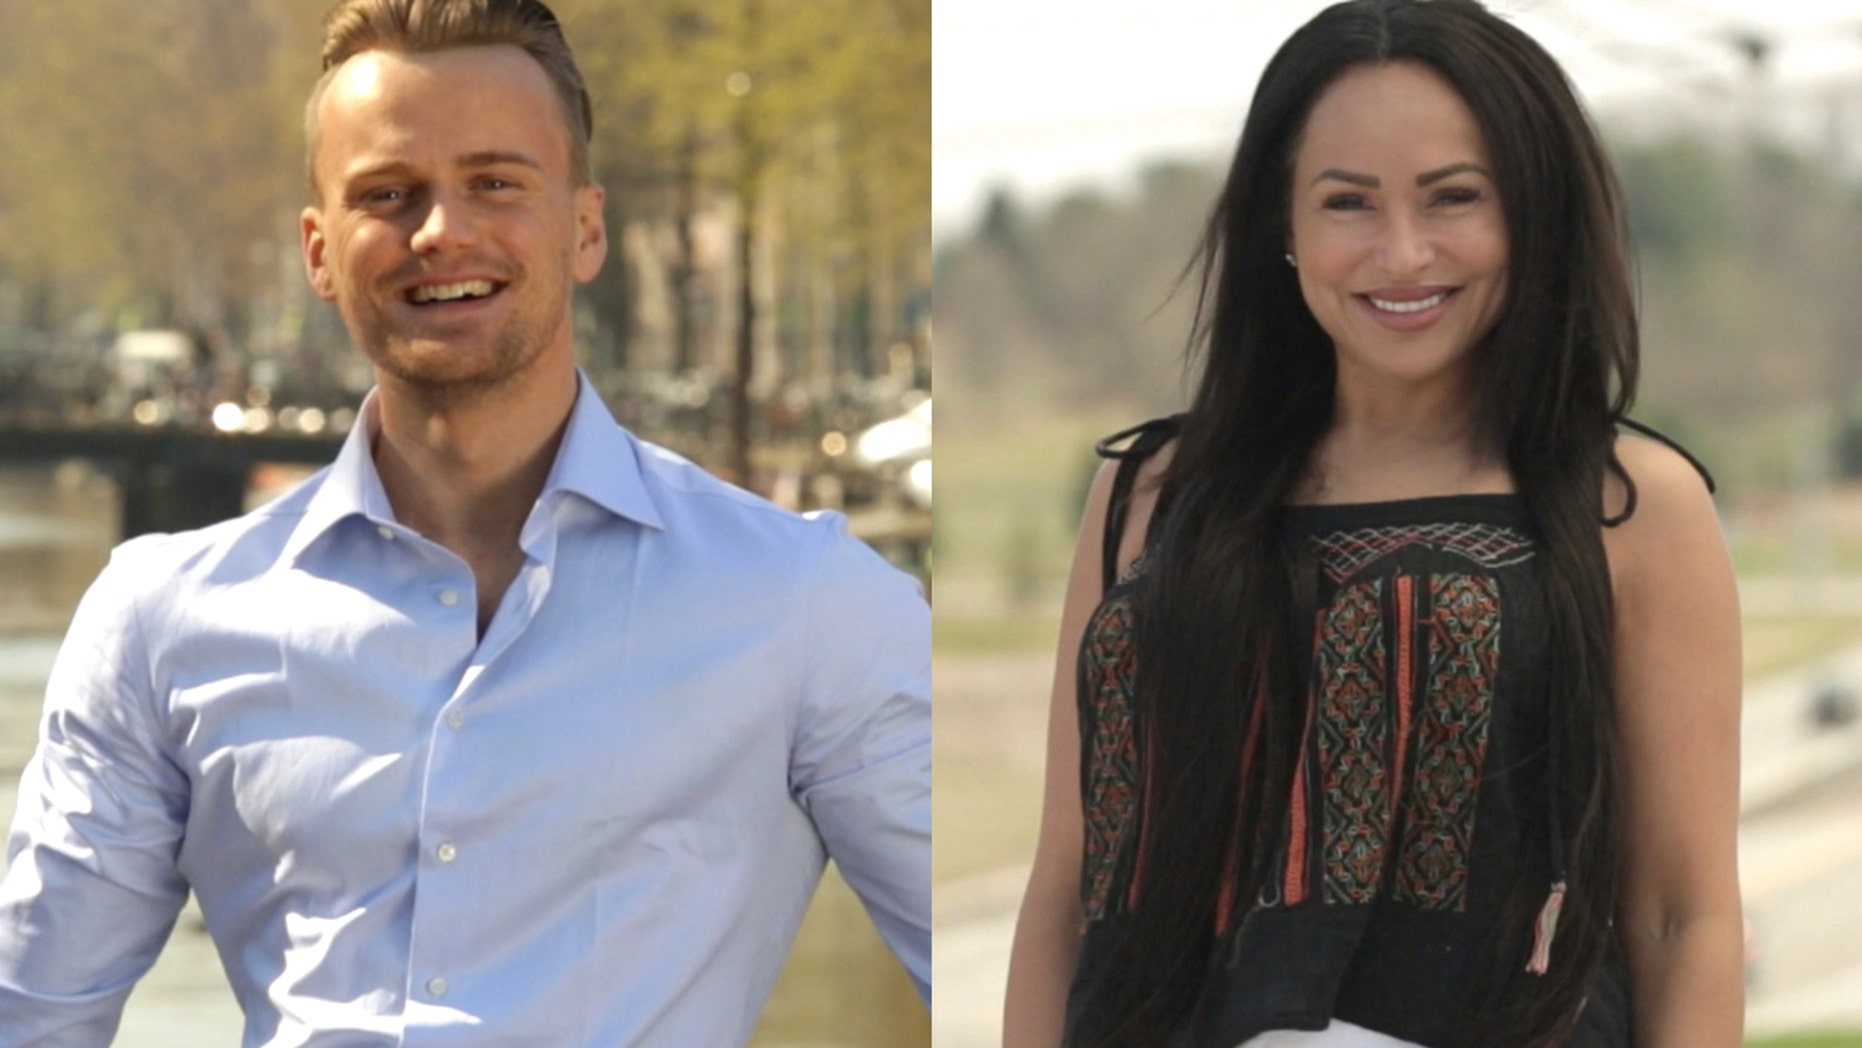 90 Day Fiance: Before the Ring's' Darcey, 42, tries to find love